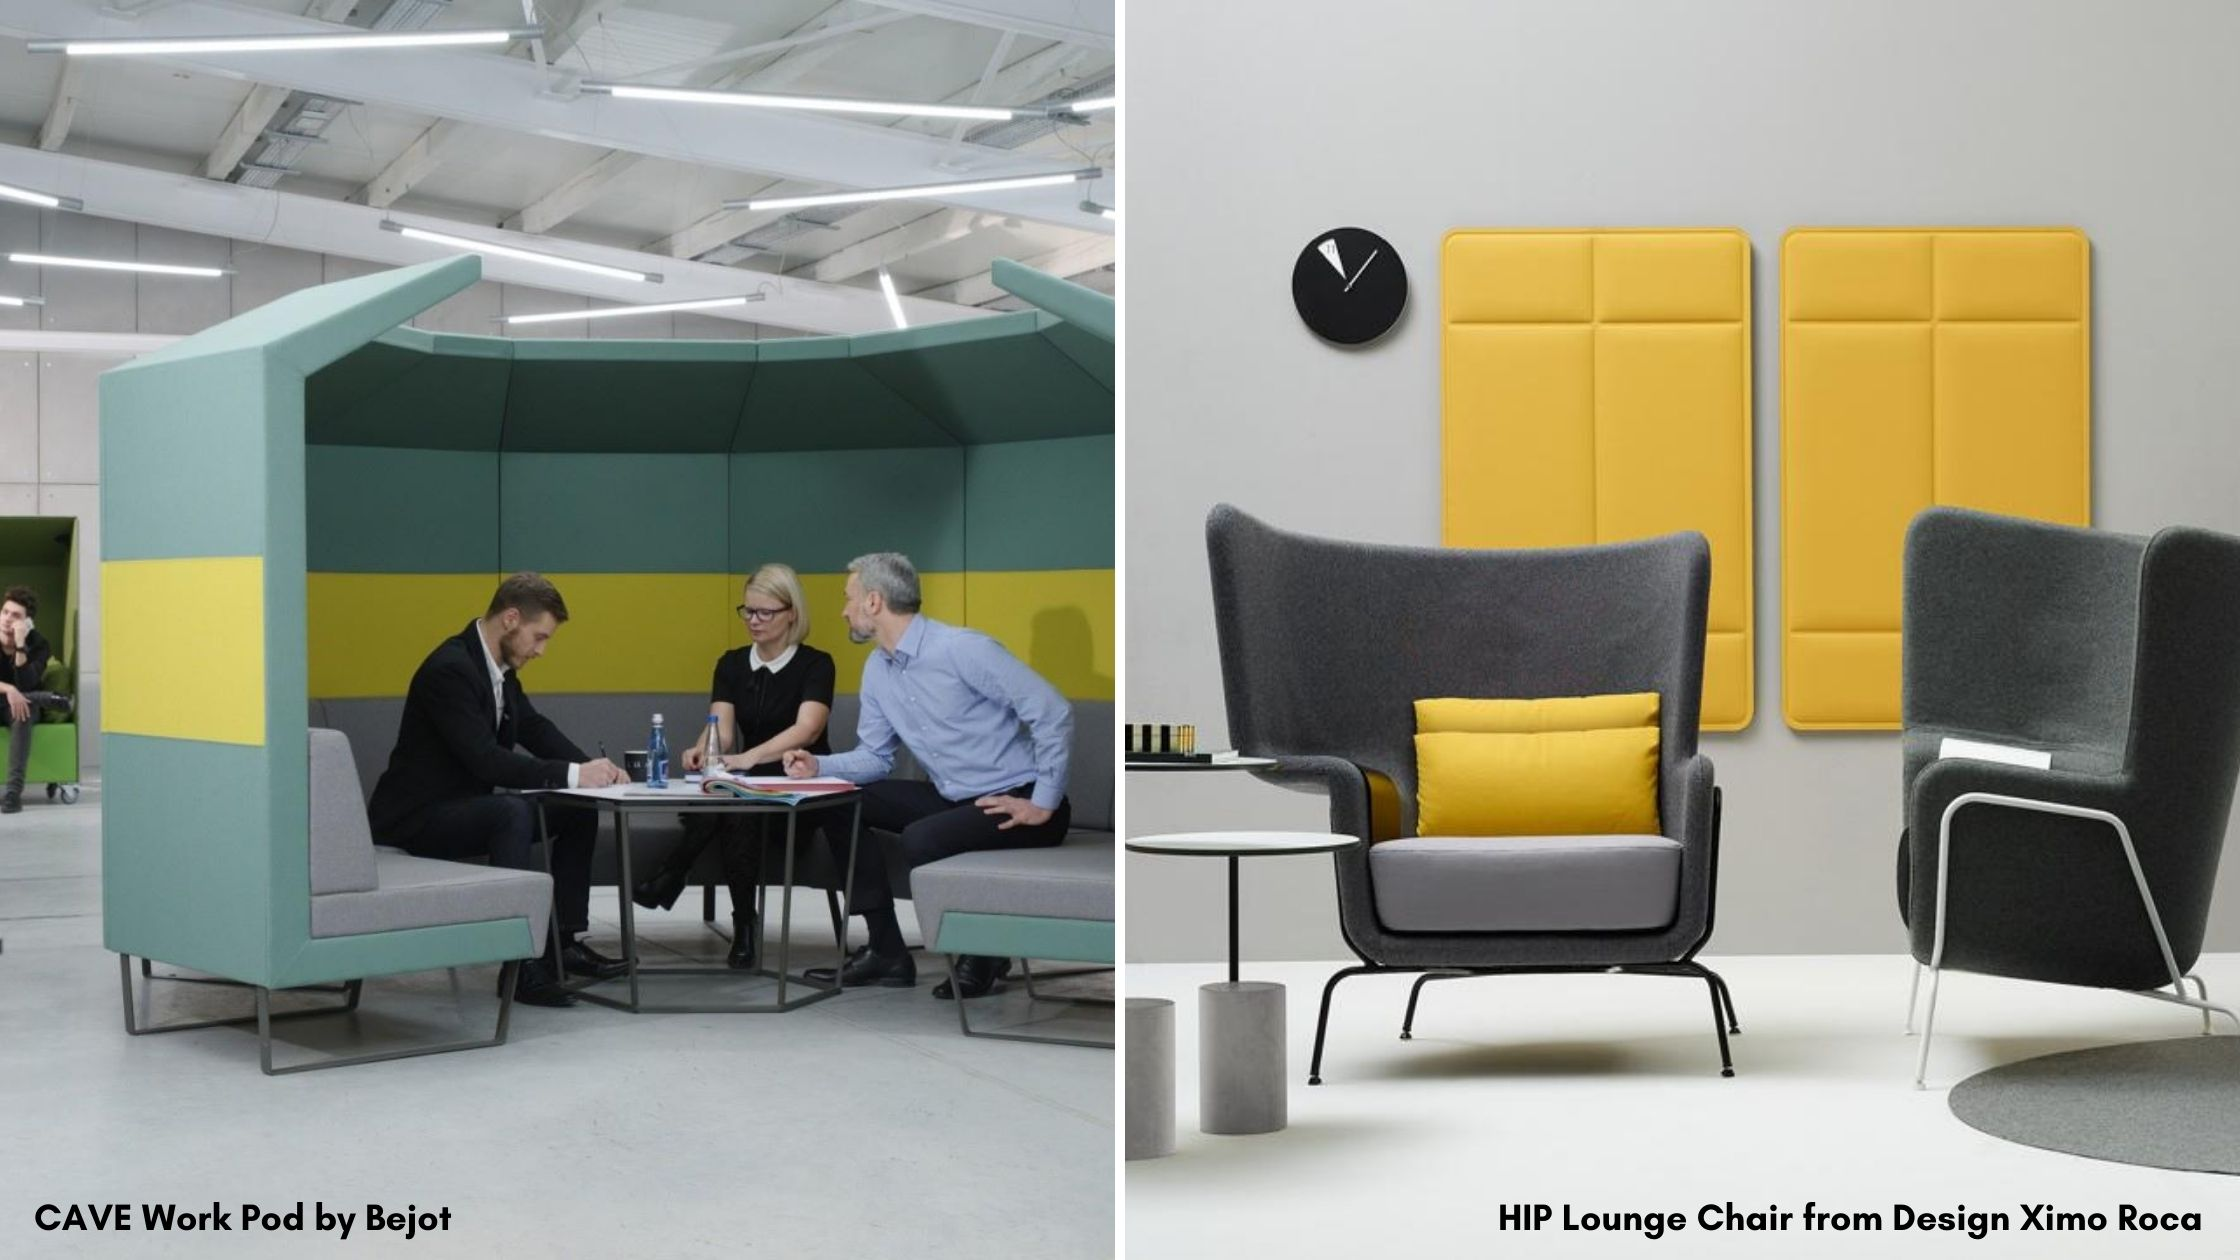 Multi-colour acoustic office caves and lounge chairs in an office workspace